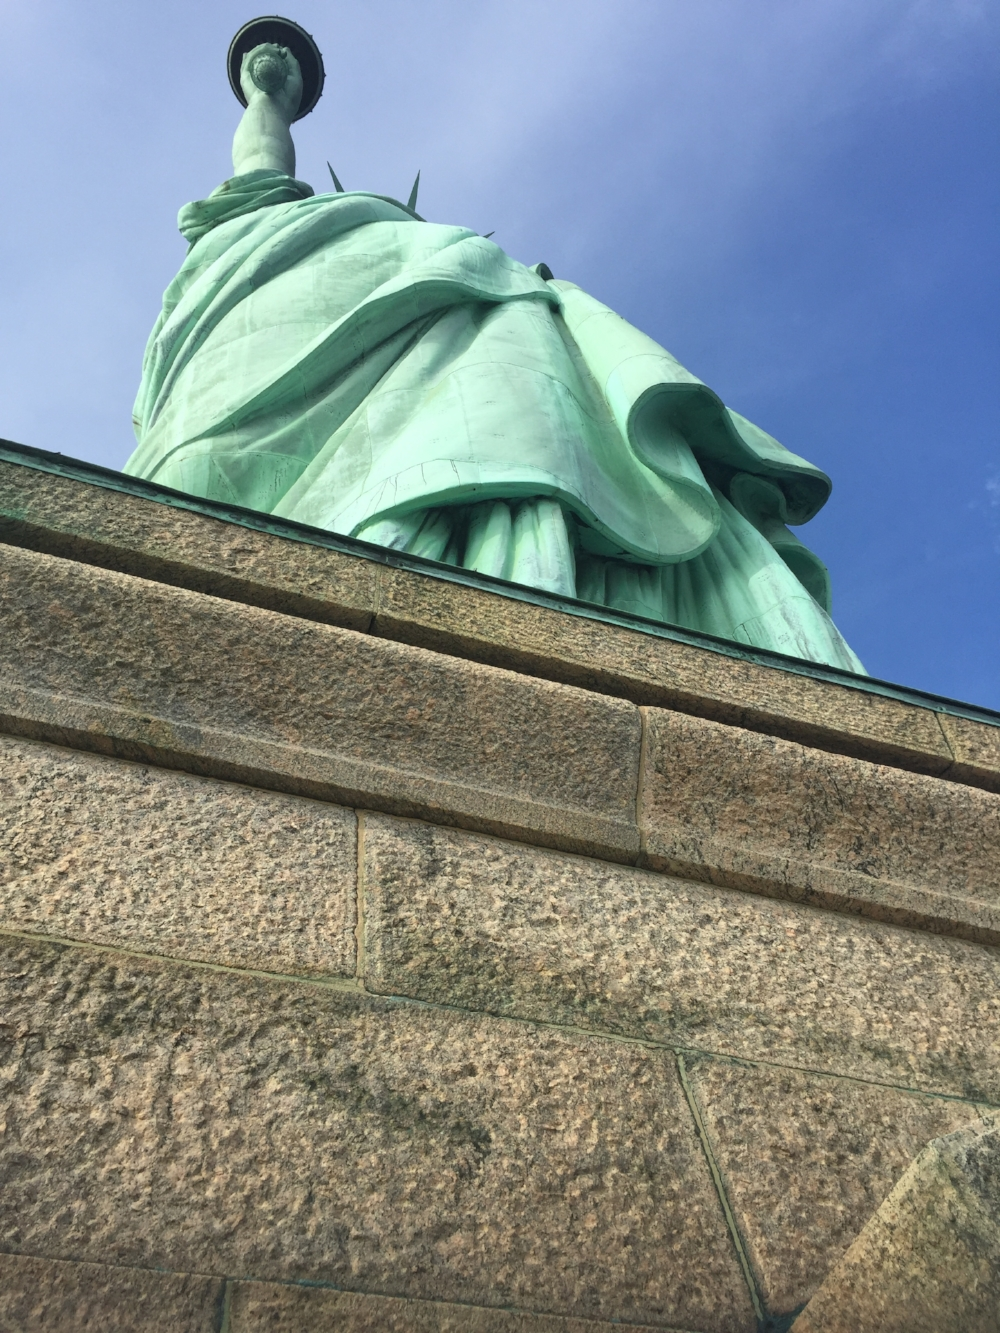 At the feet of the Statue of Liberty